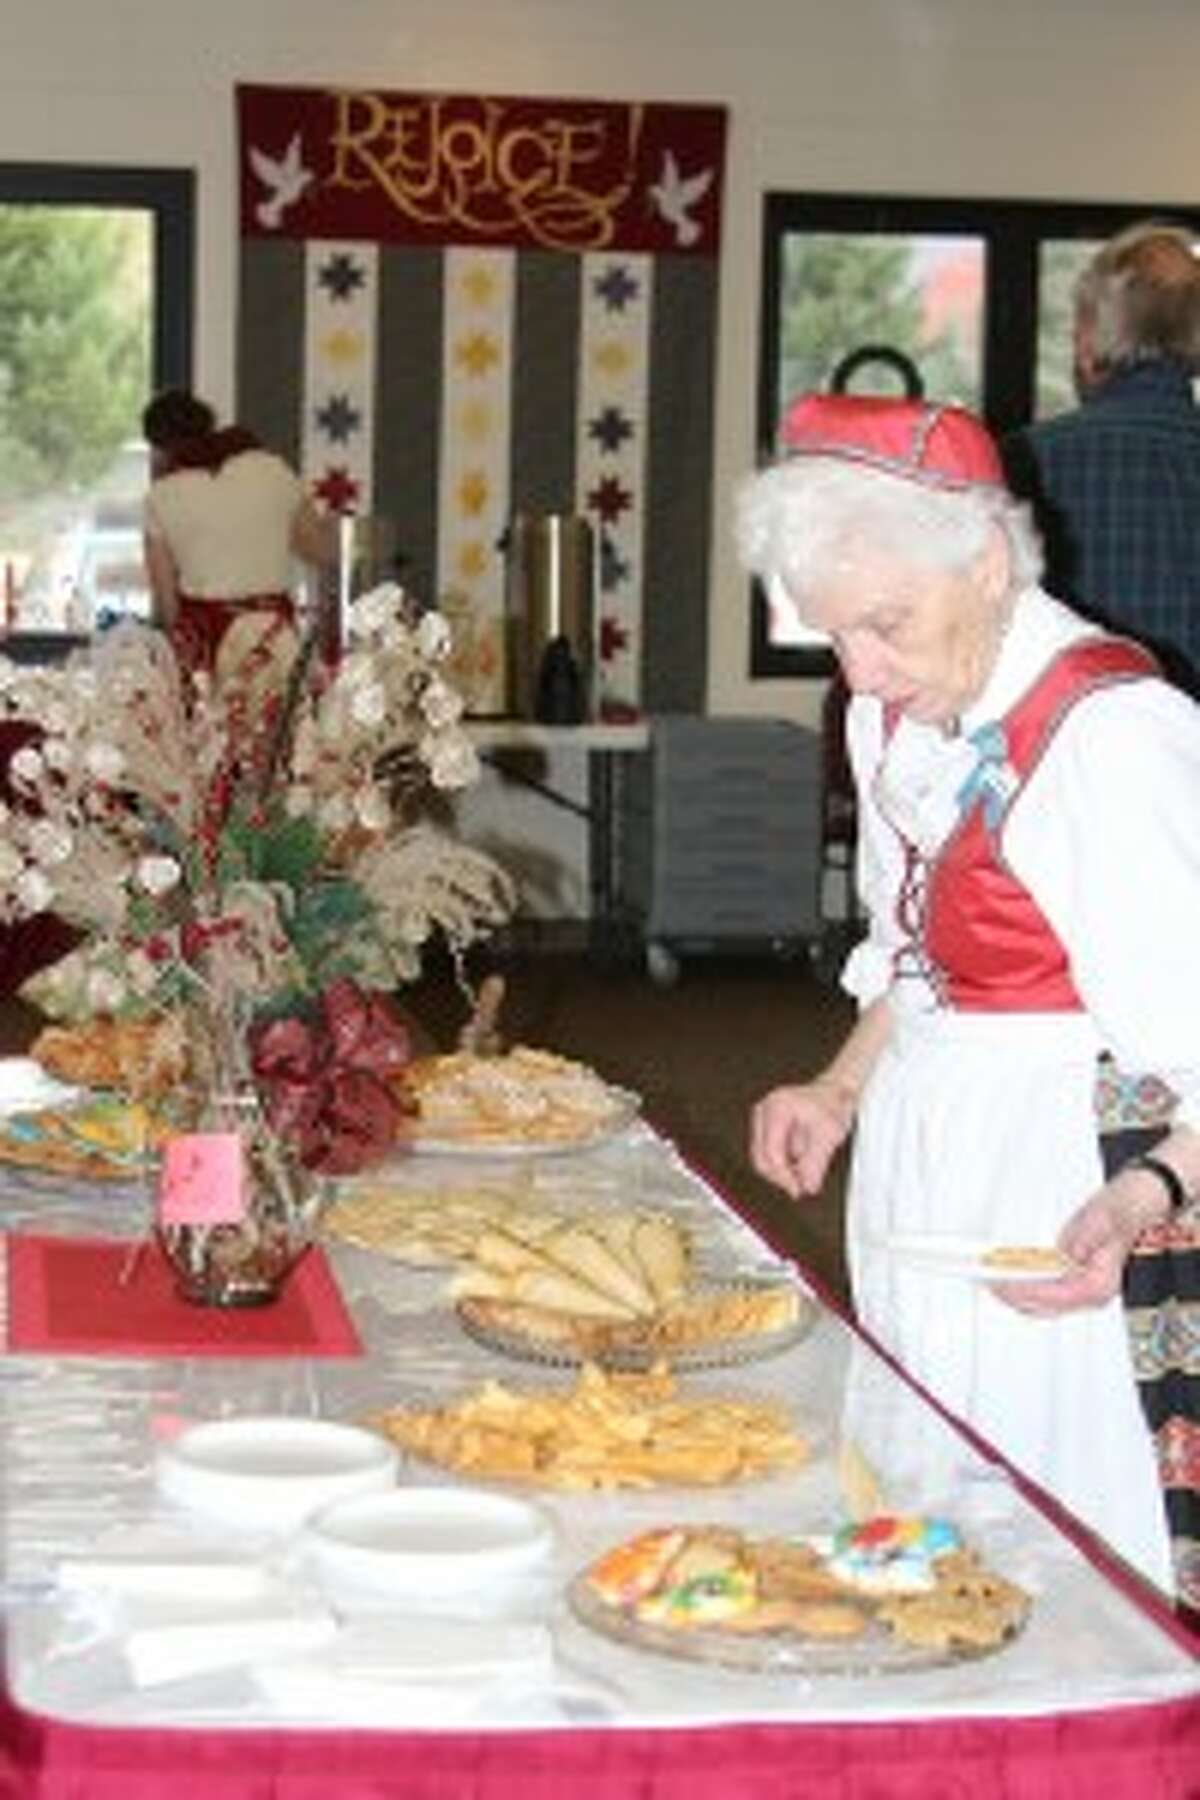 IN THE SPIRIT: Traditional Scandinavian cookies were part of the spread at the Scandinavian Bazaar and Luncheon, held Saturday. Visitors could get a lunch of Norwegian meatballs and sausage.